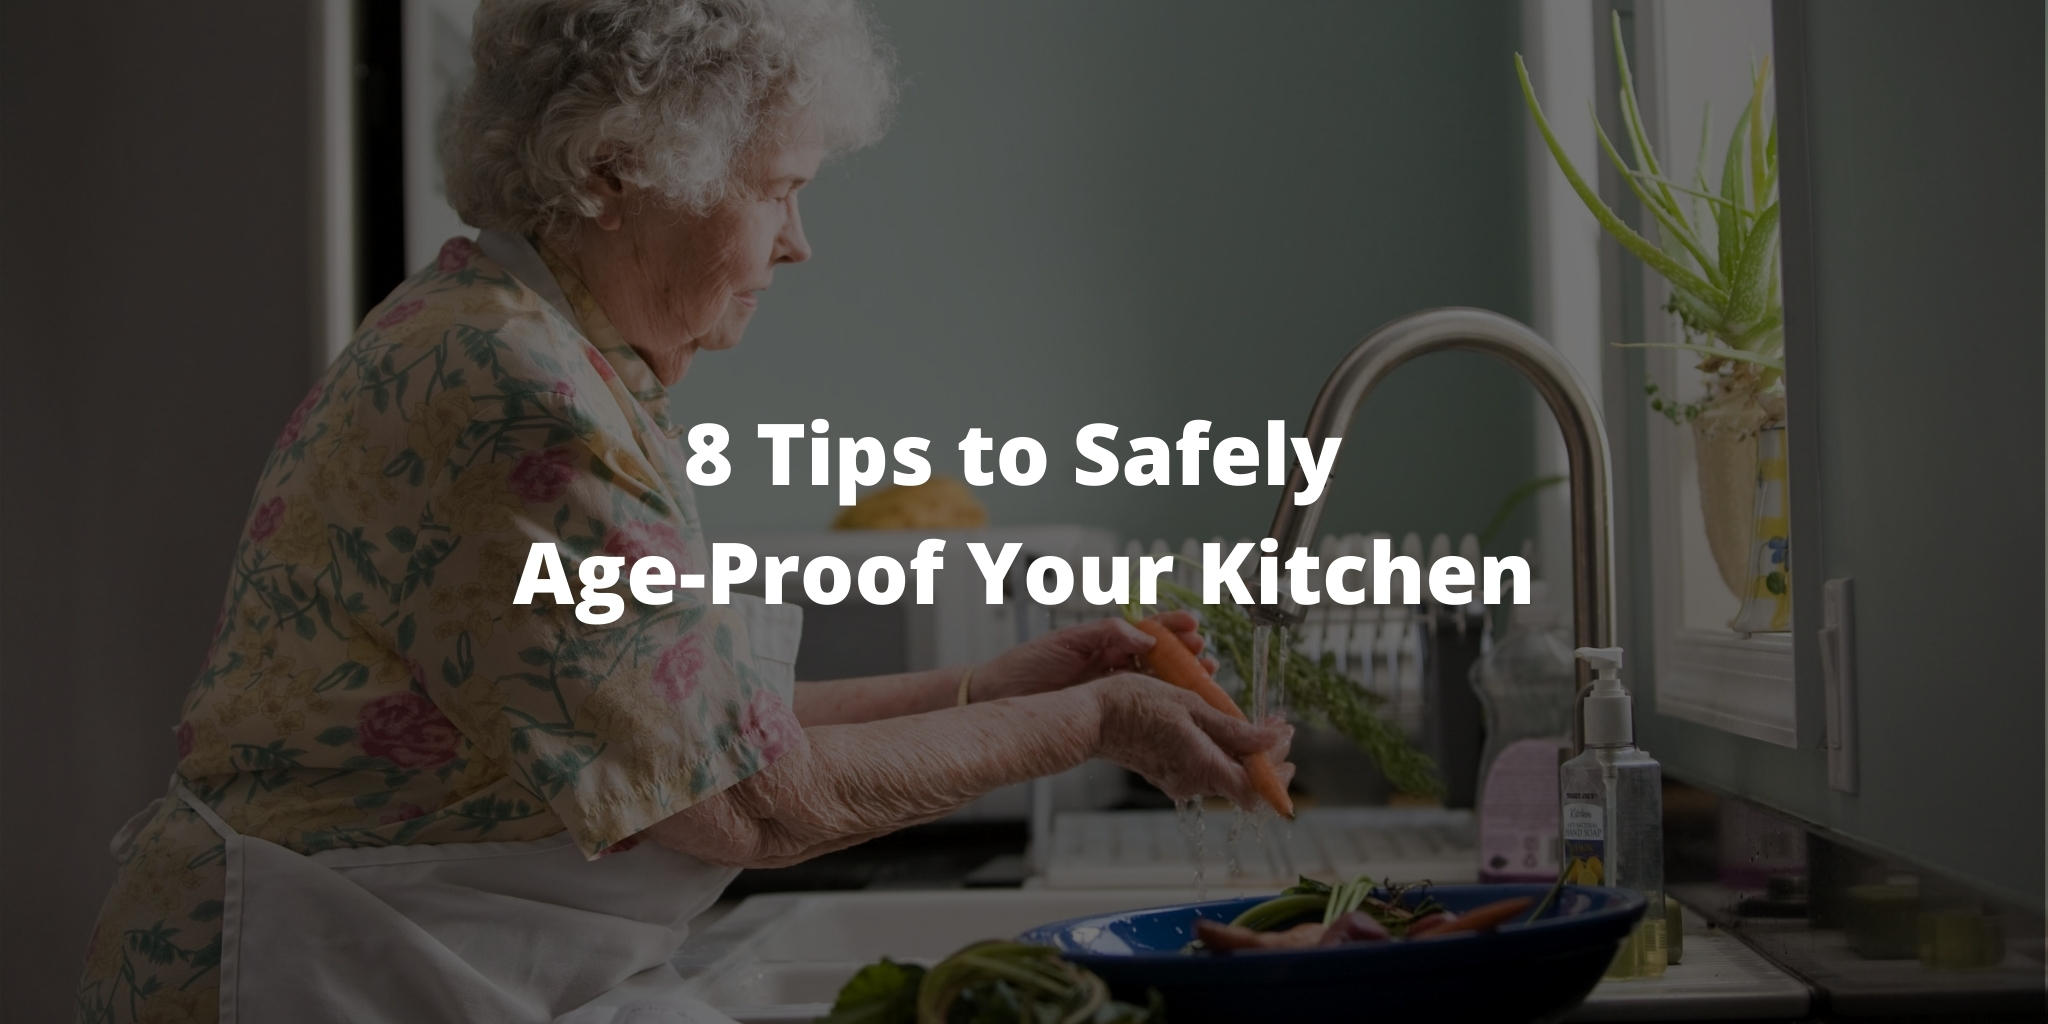 8 Tips to Safely Age-Proof Your Kitchen